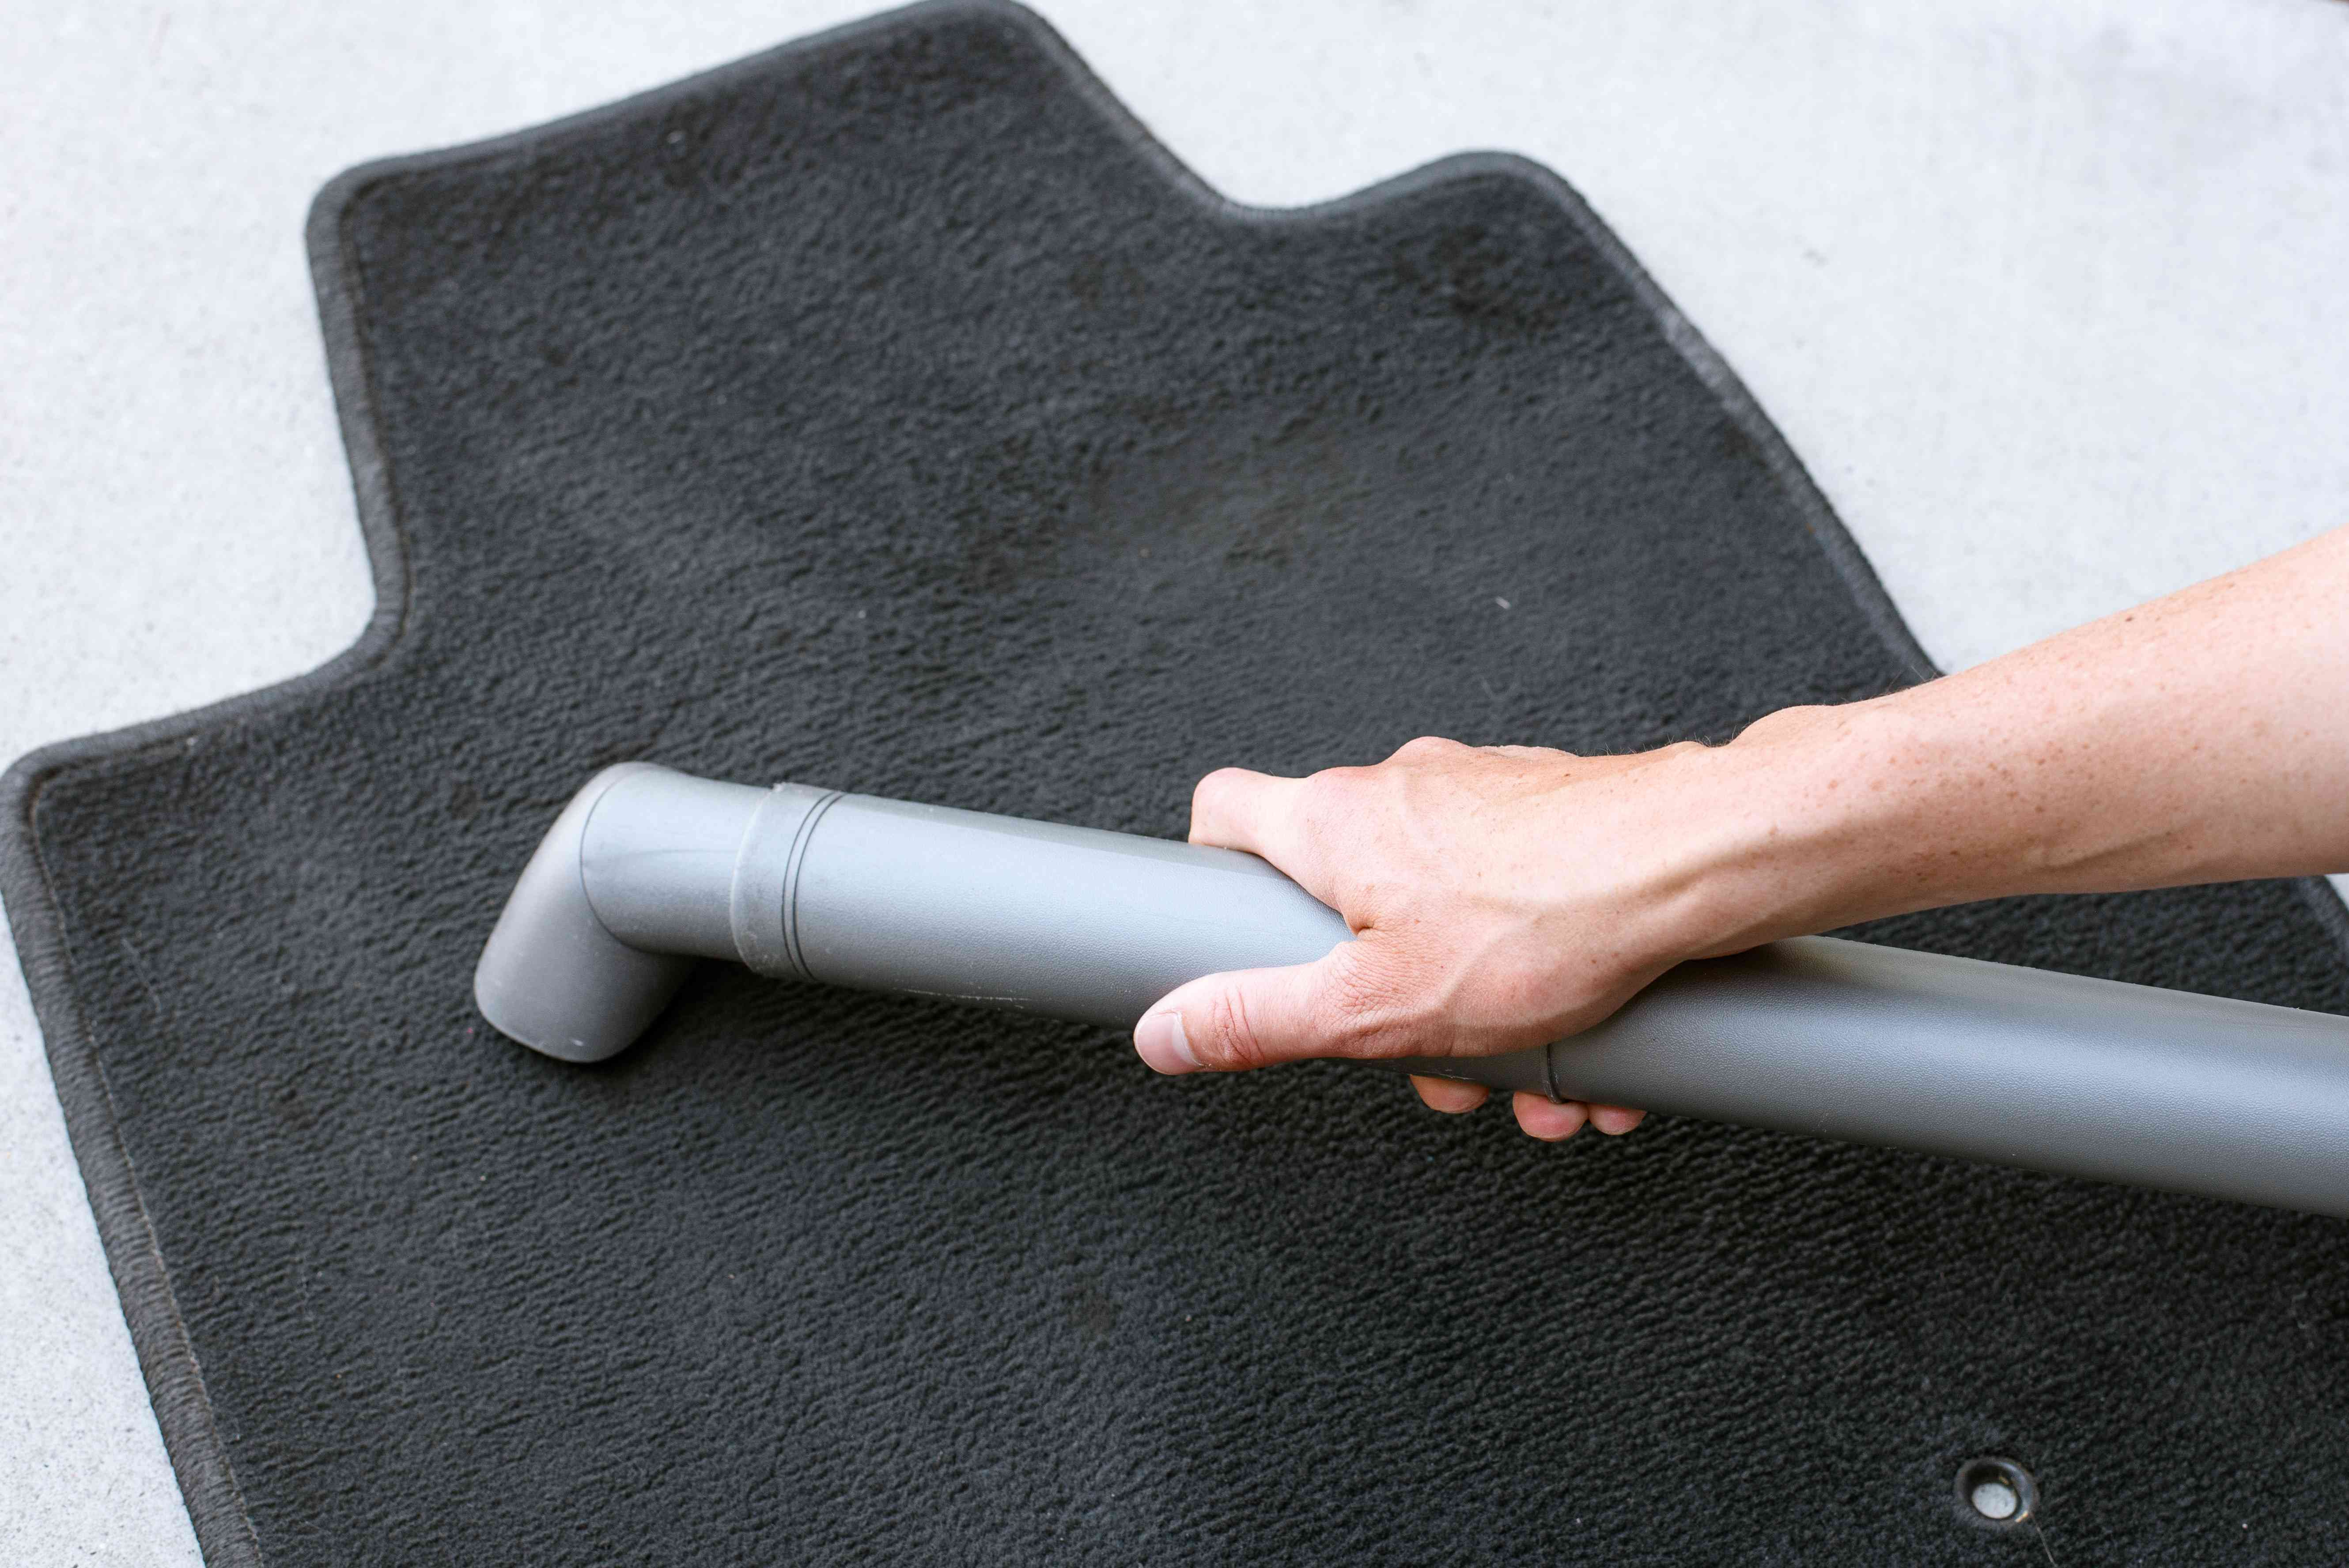 Black car mat being vacuumed while lying flat